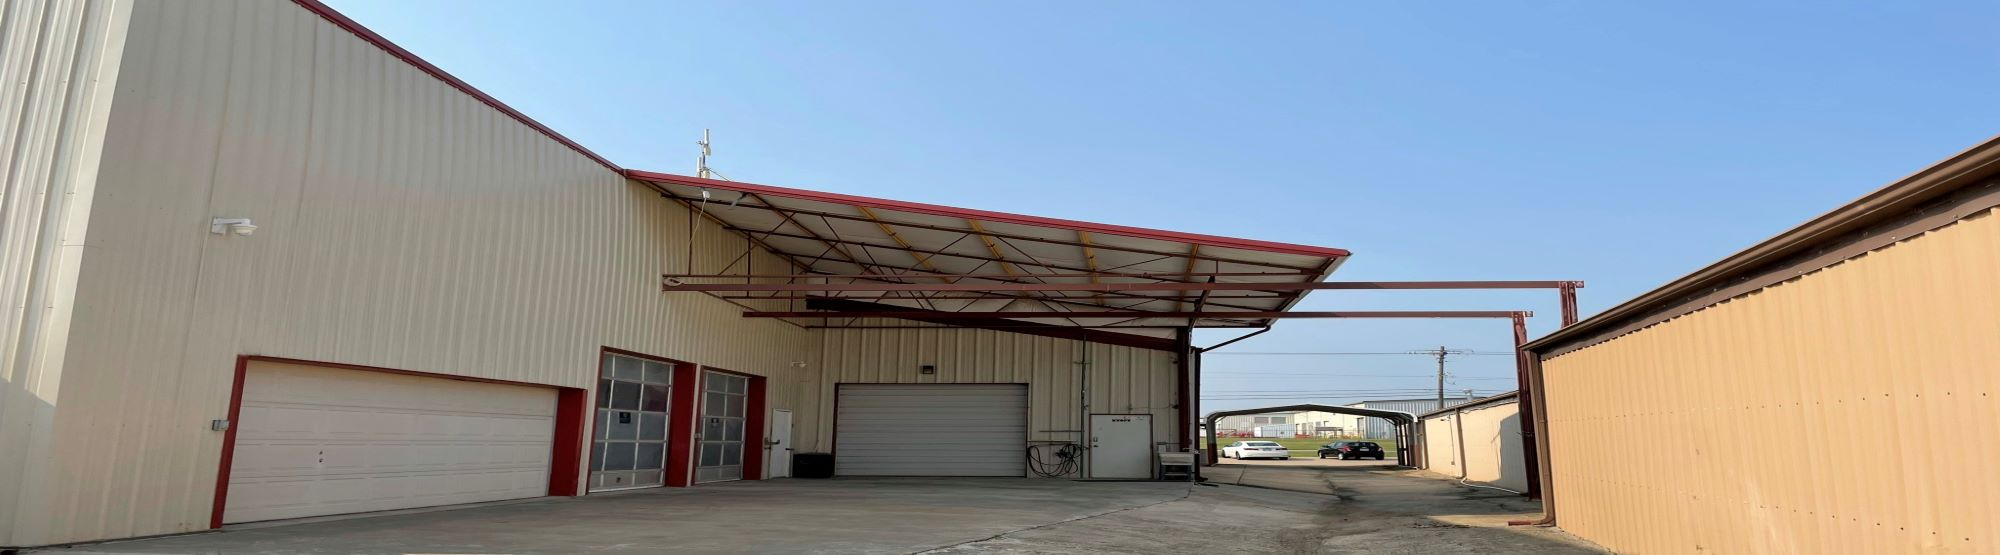 Self Storage in Independence